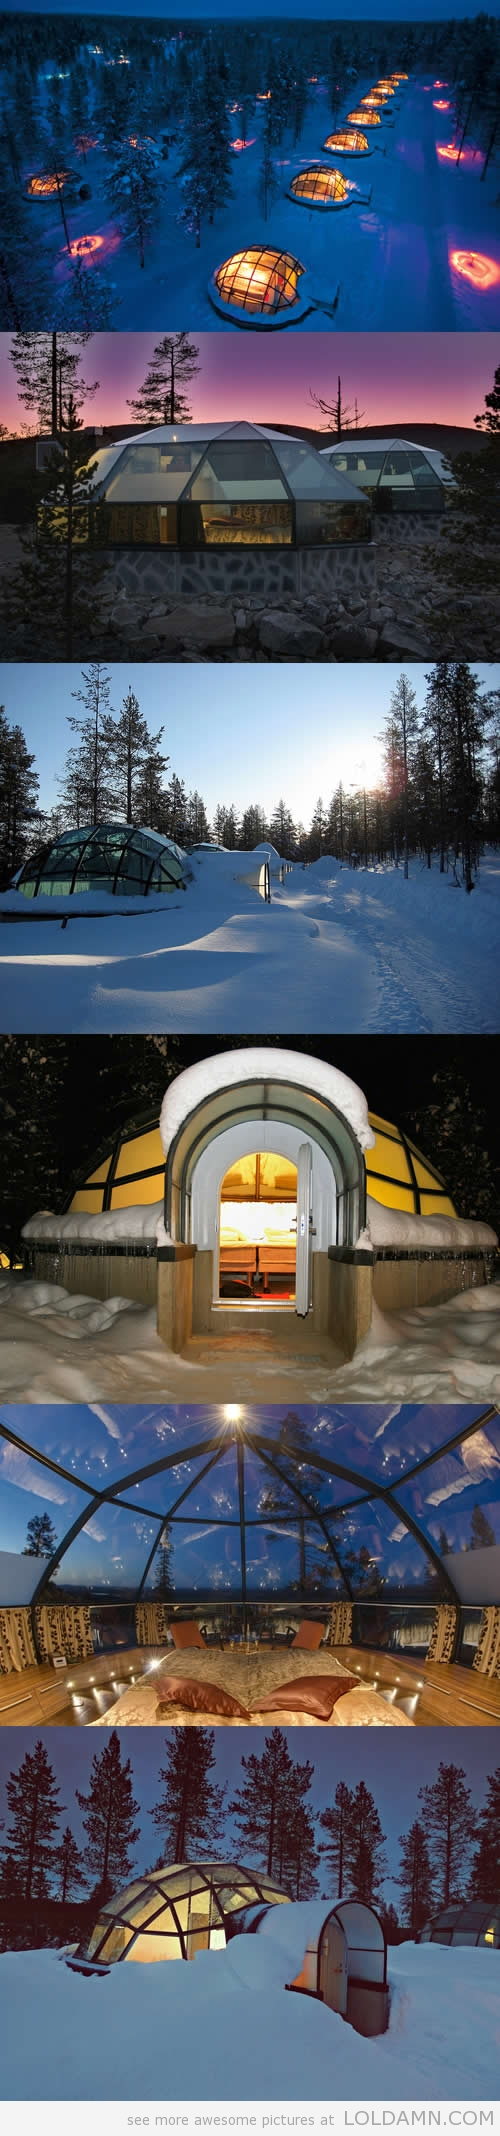 Watching The Northern Lights From A Glass Igloo In Finland